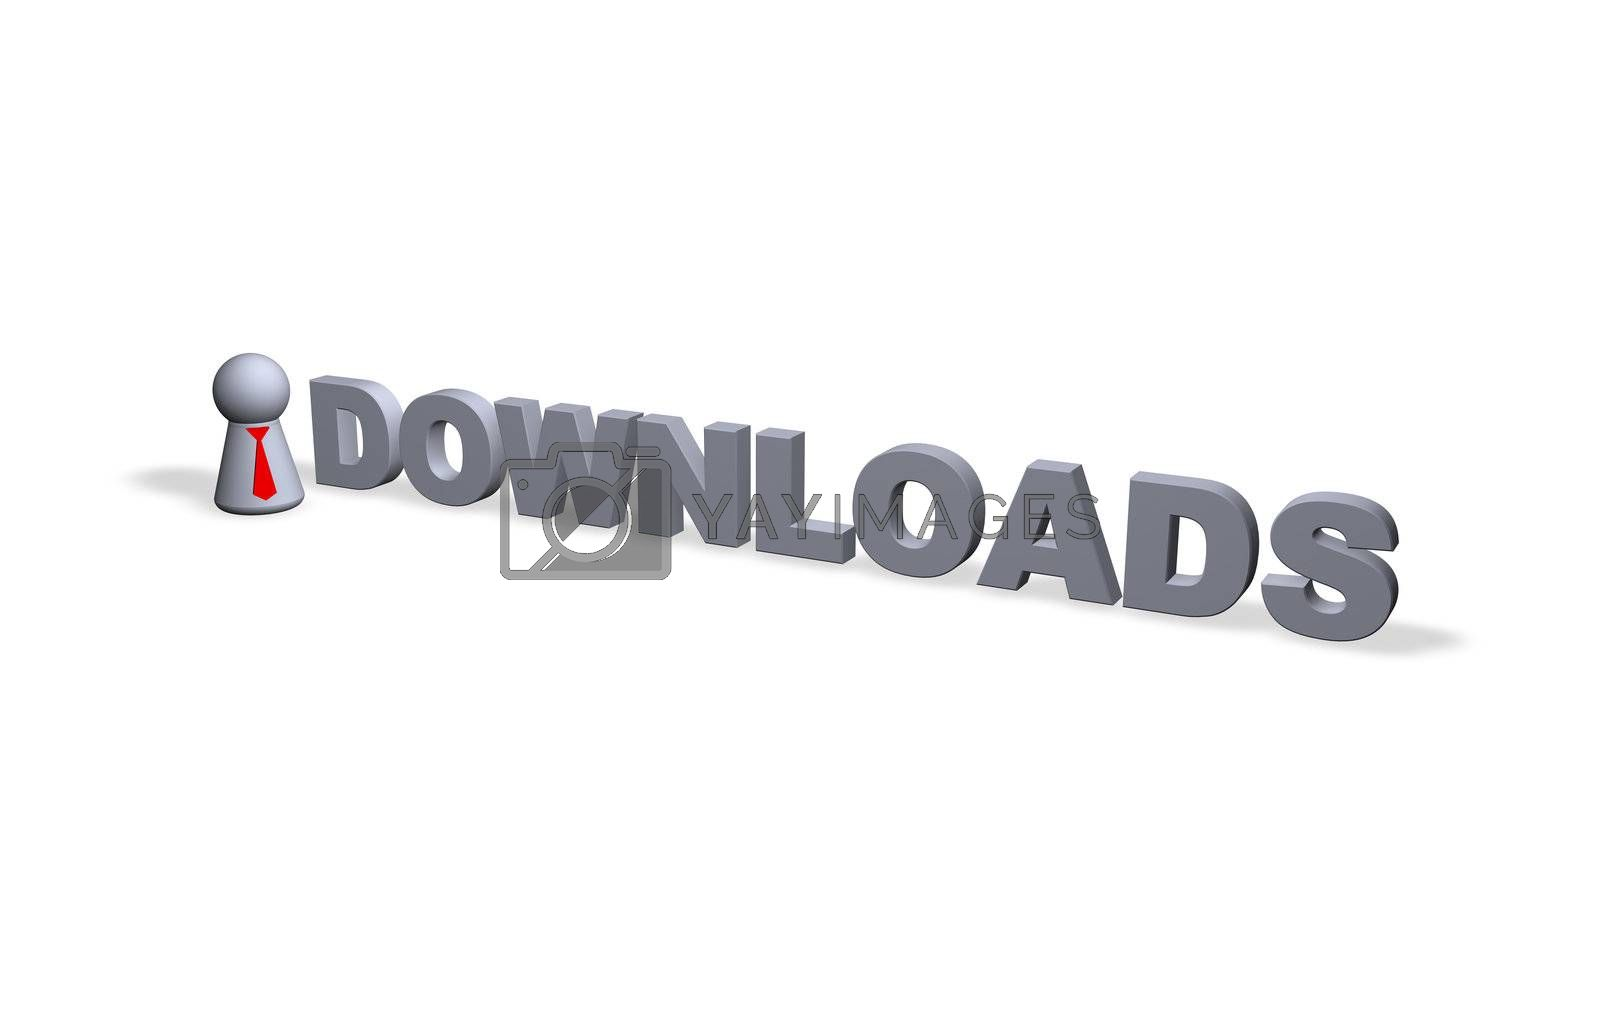 play figure with red tie and downloads text in 3d